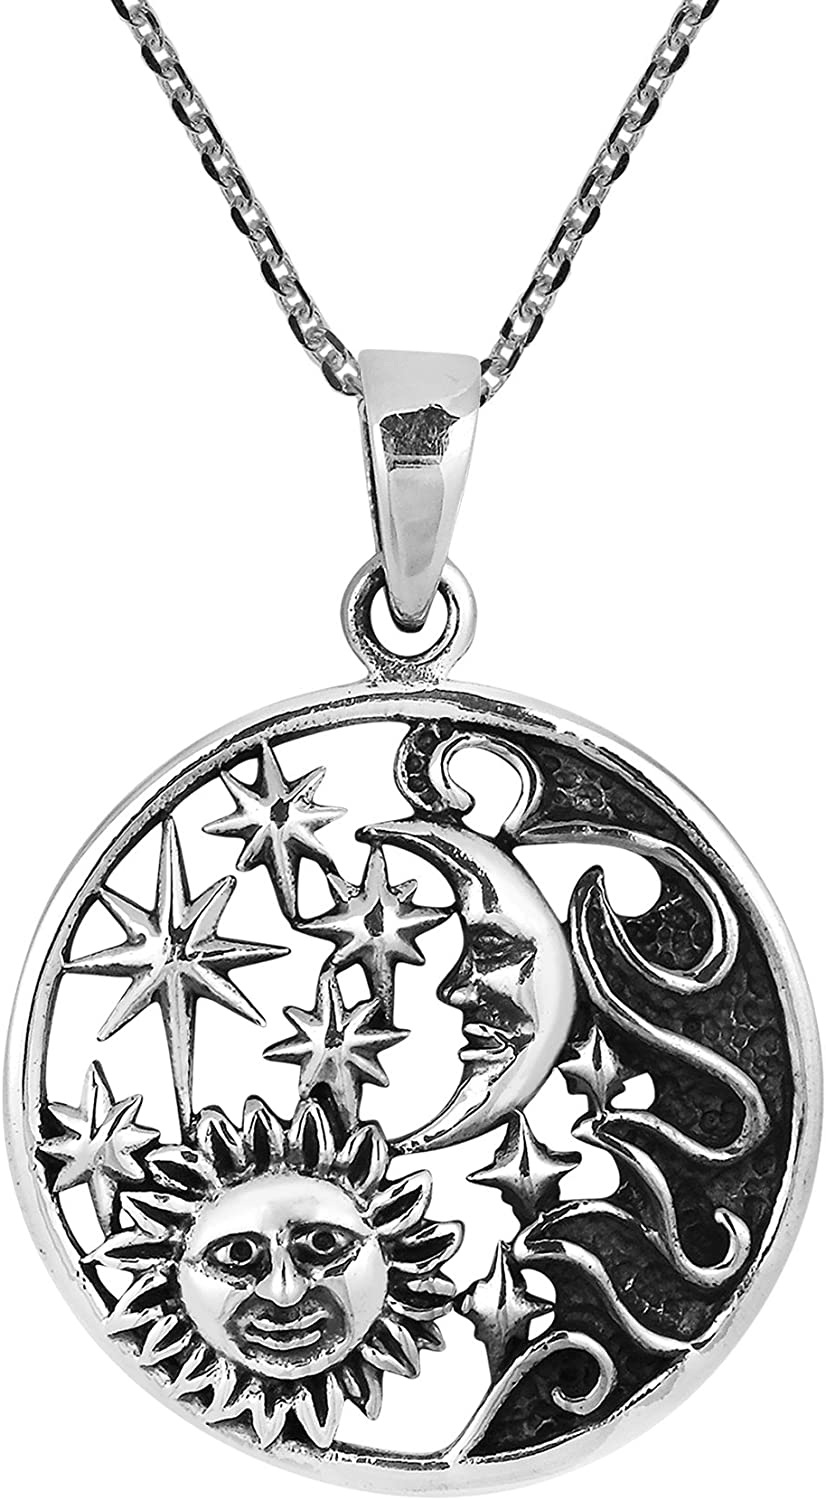 AeraVida Celestial Amulet Sun Moon and Star .925 Sterling Silver Pendant Necklace